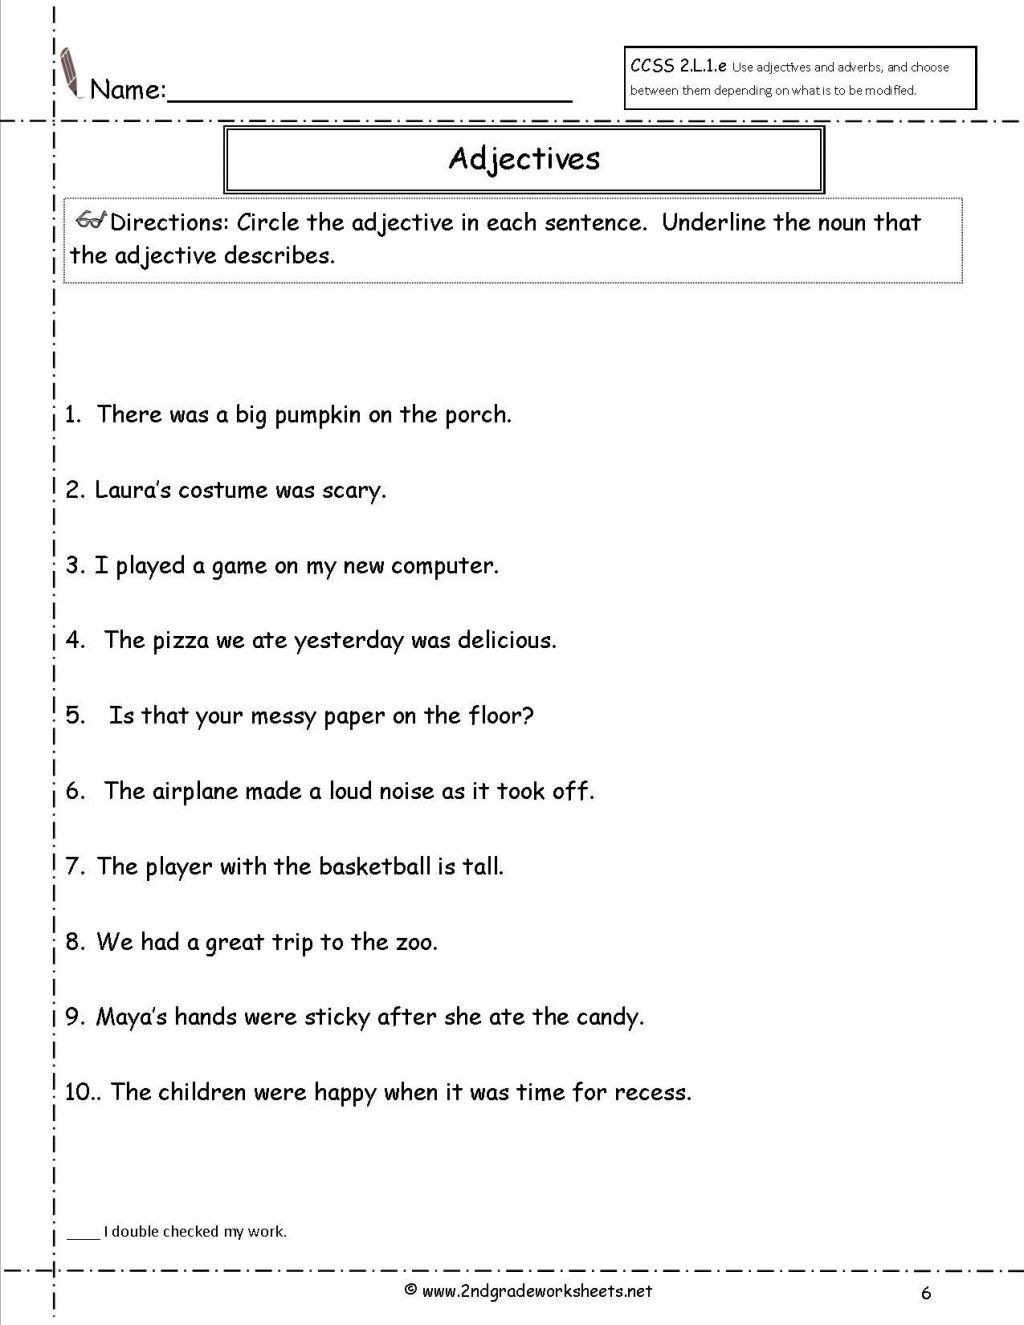 Free Printable Adjective Worksheets Worksheet Ideas Free